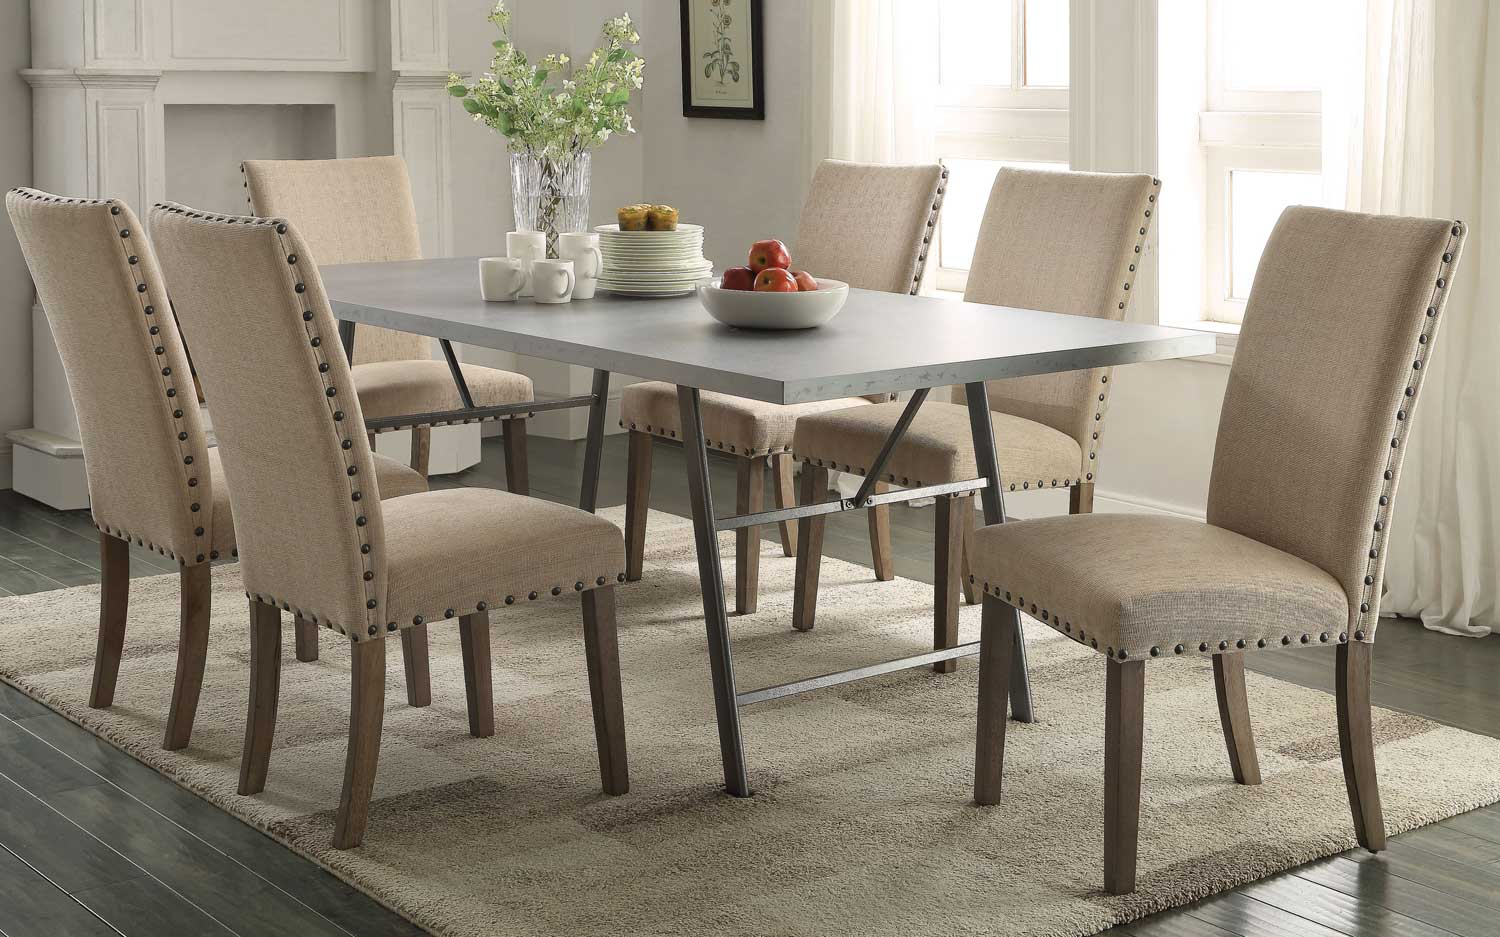 Coaster Amherst Dining Set - Natural/Gunmetal